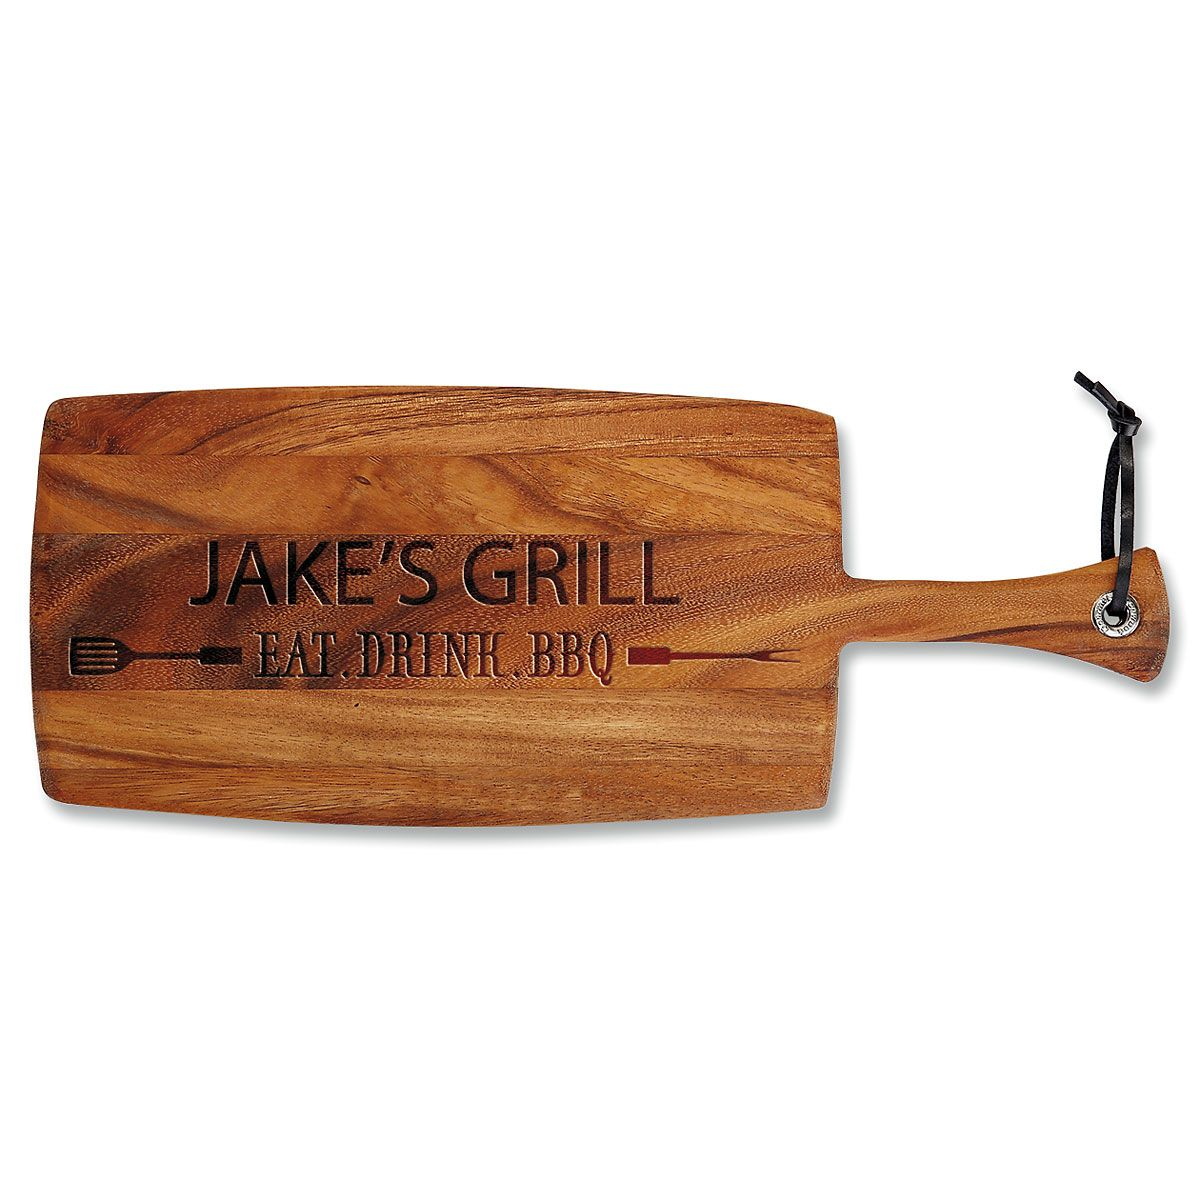 Personalized Eat, Drink, BBQ Paddle Cutting Board